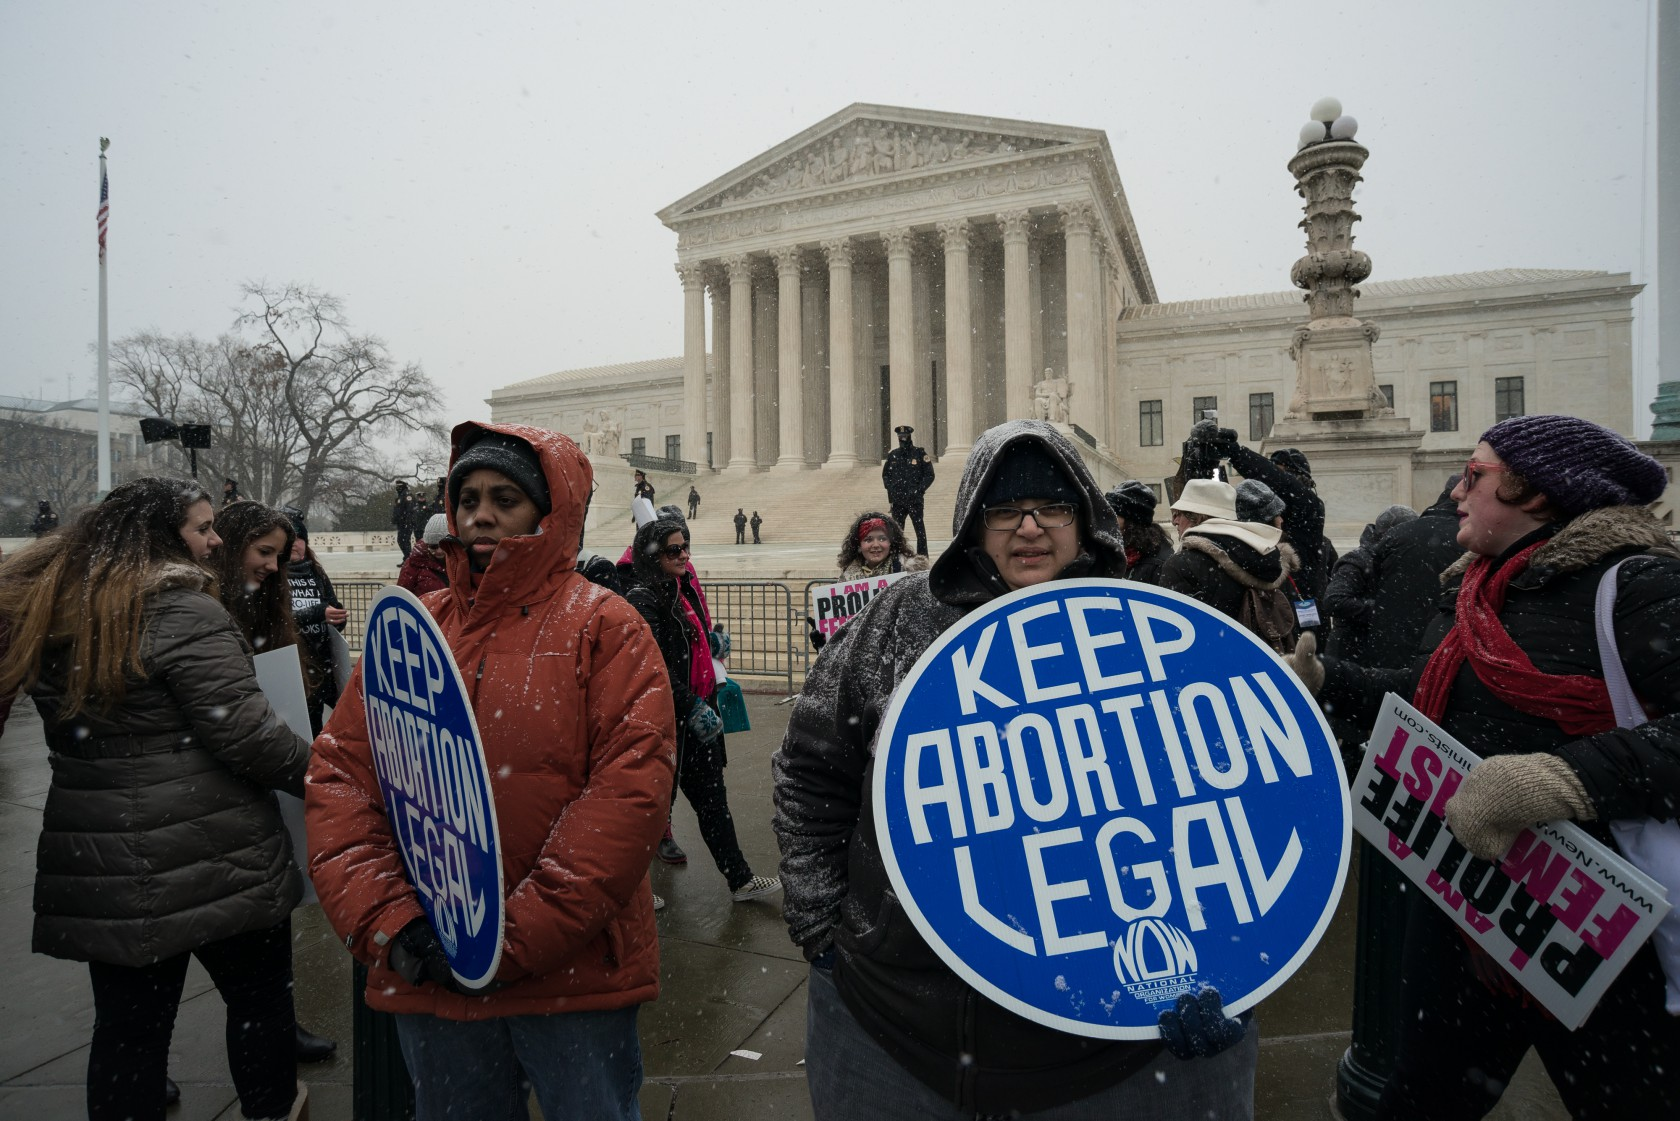 Pro-choice demonstrators stage a counter protest near the...